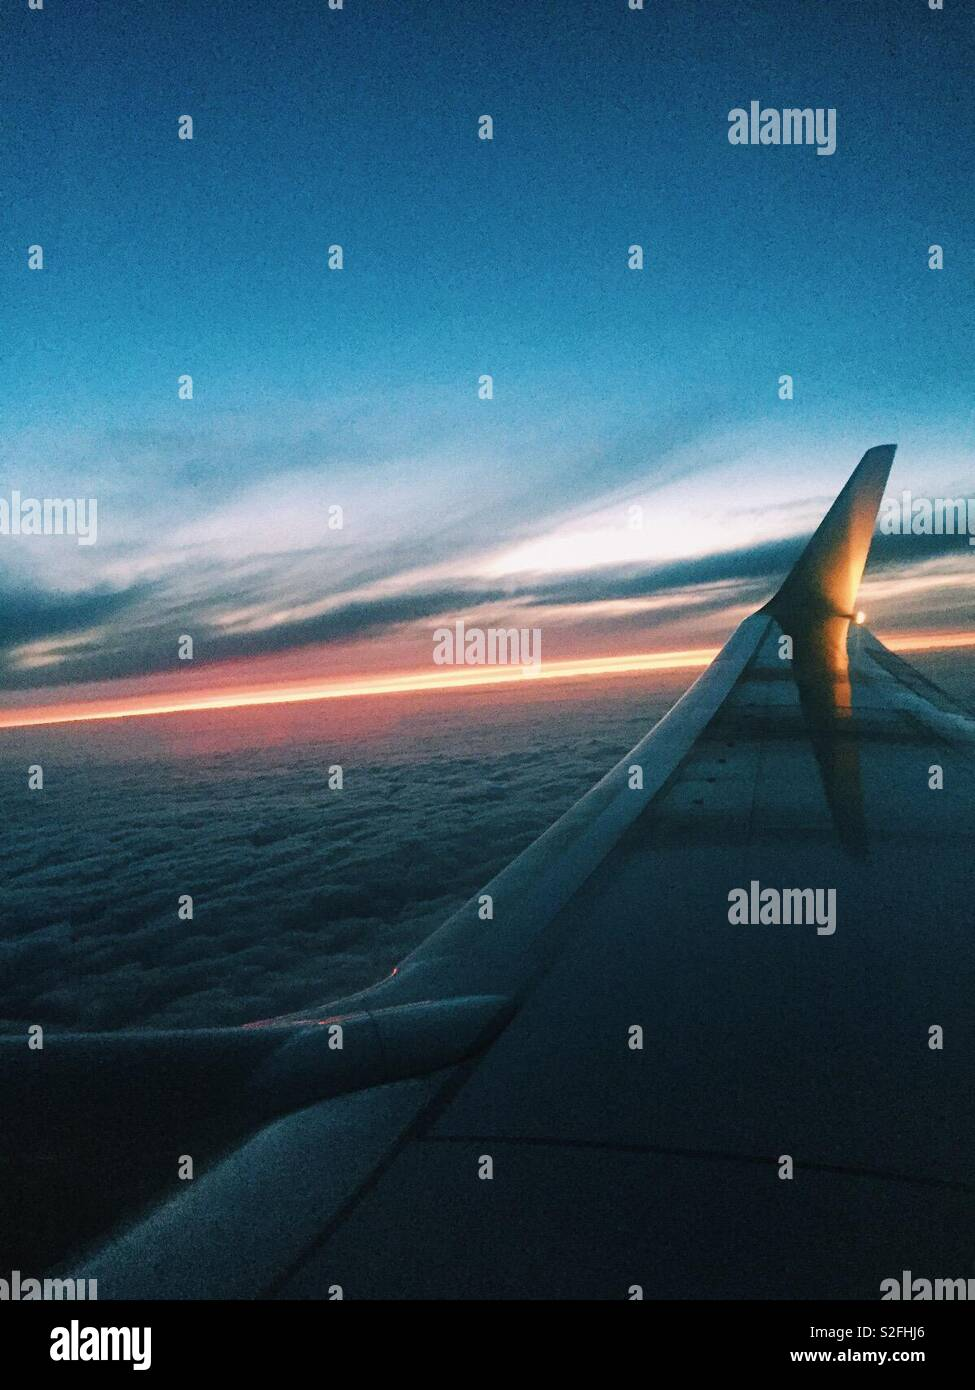 Air plane view - Stock Image